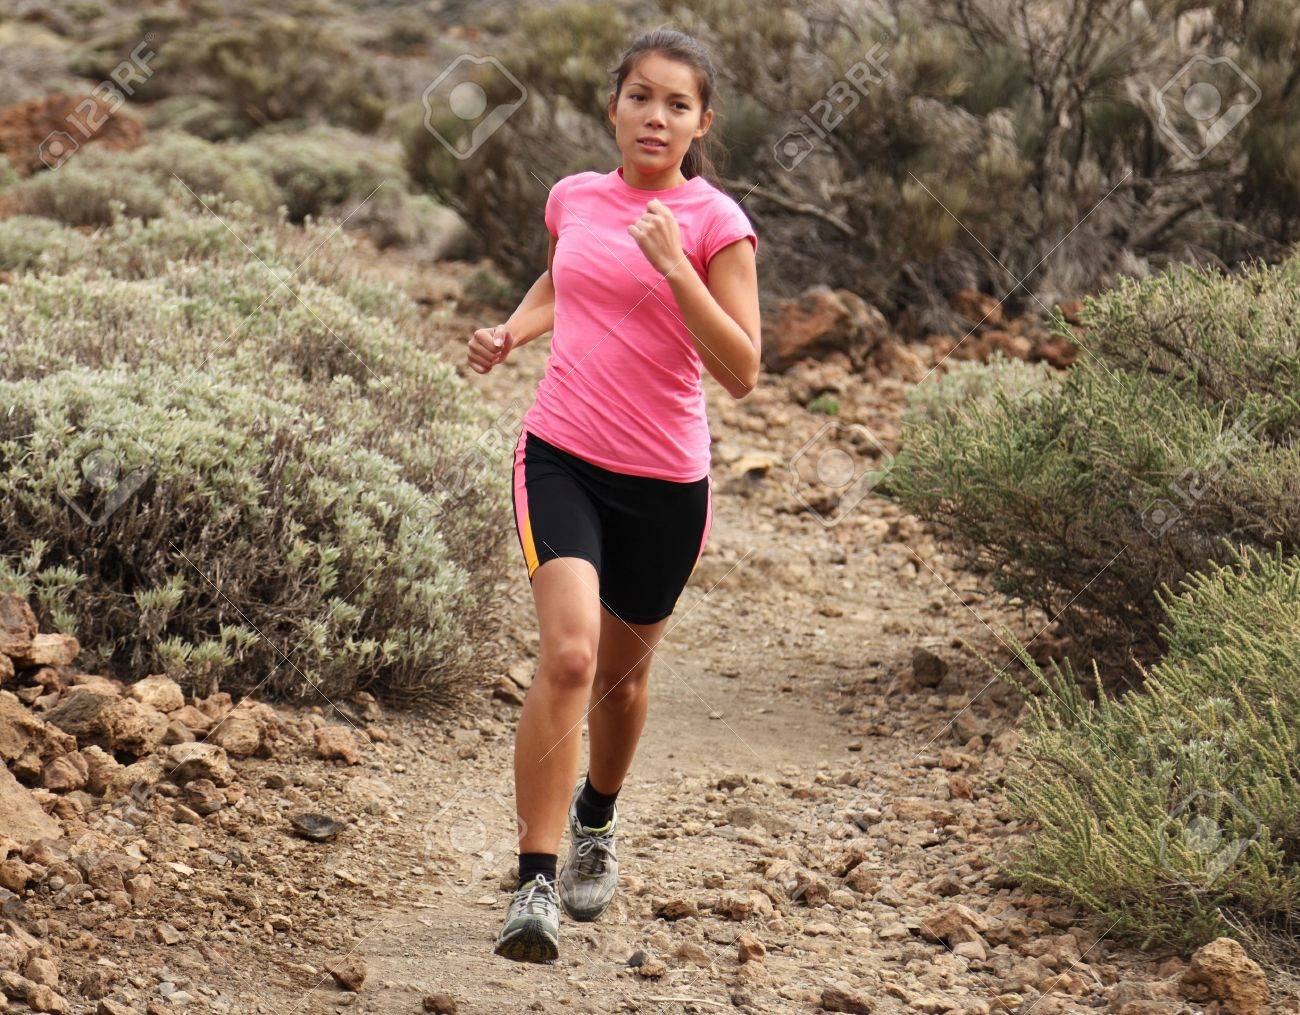 Woman running. Woman trail running outdoors on dirt single track in desert landscape in cross country running shoes. Stock Photo - 6878844